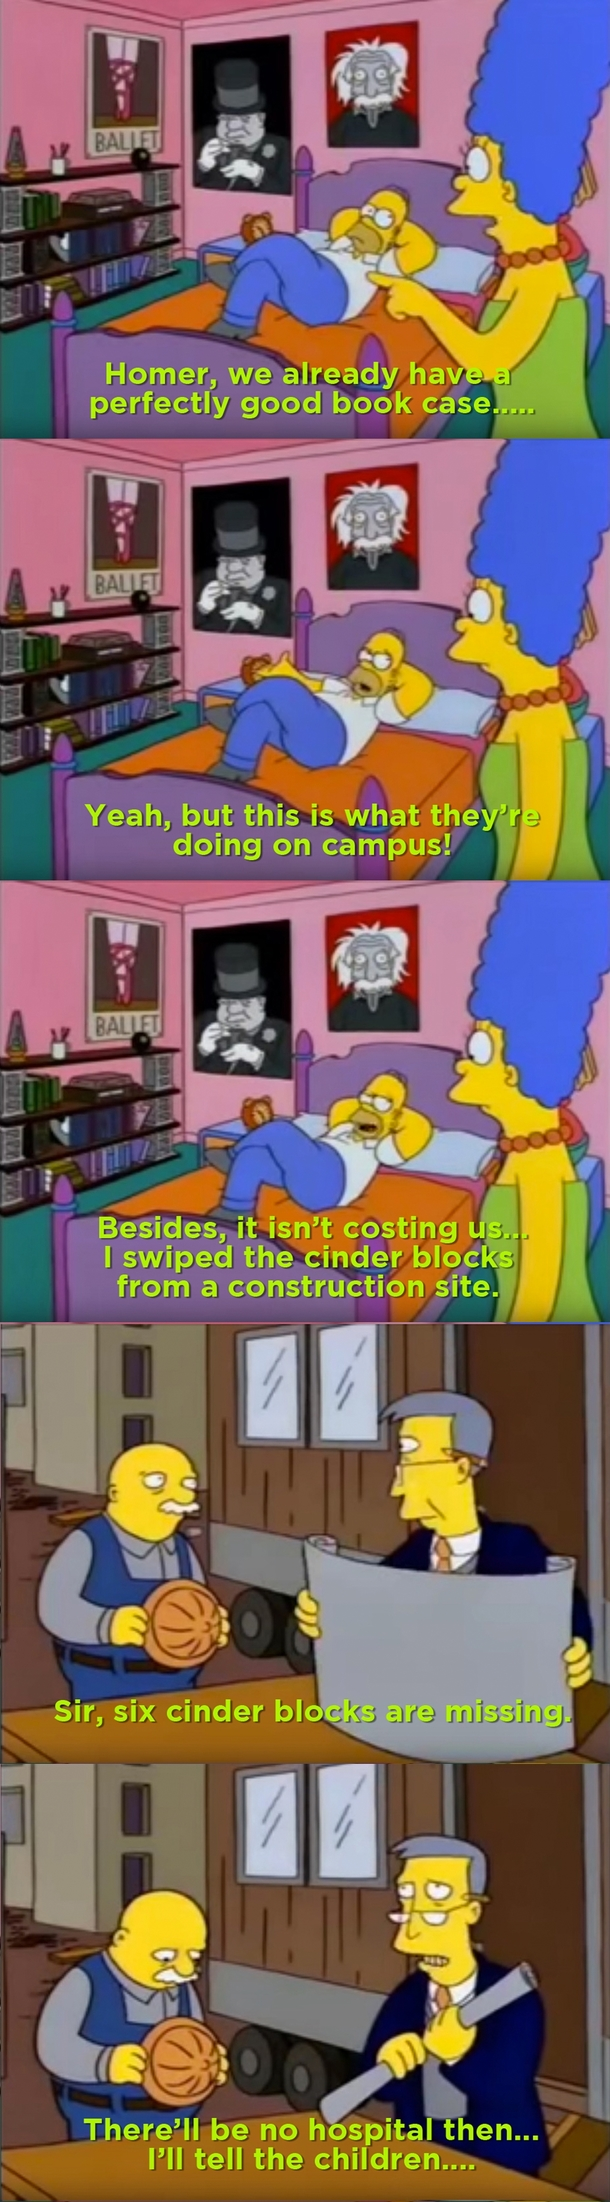 Homers dorm room inspired furniture